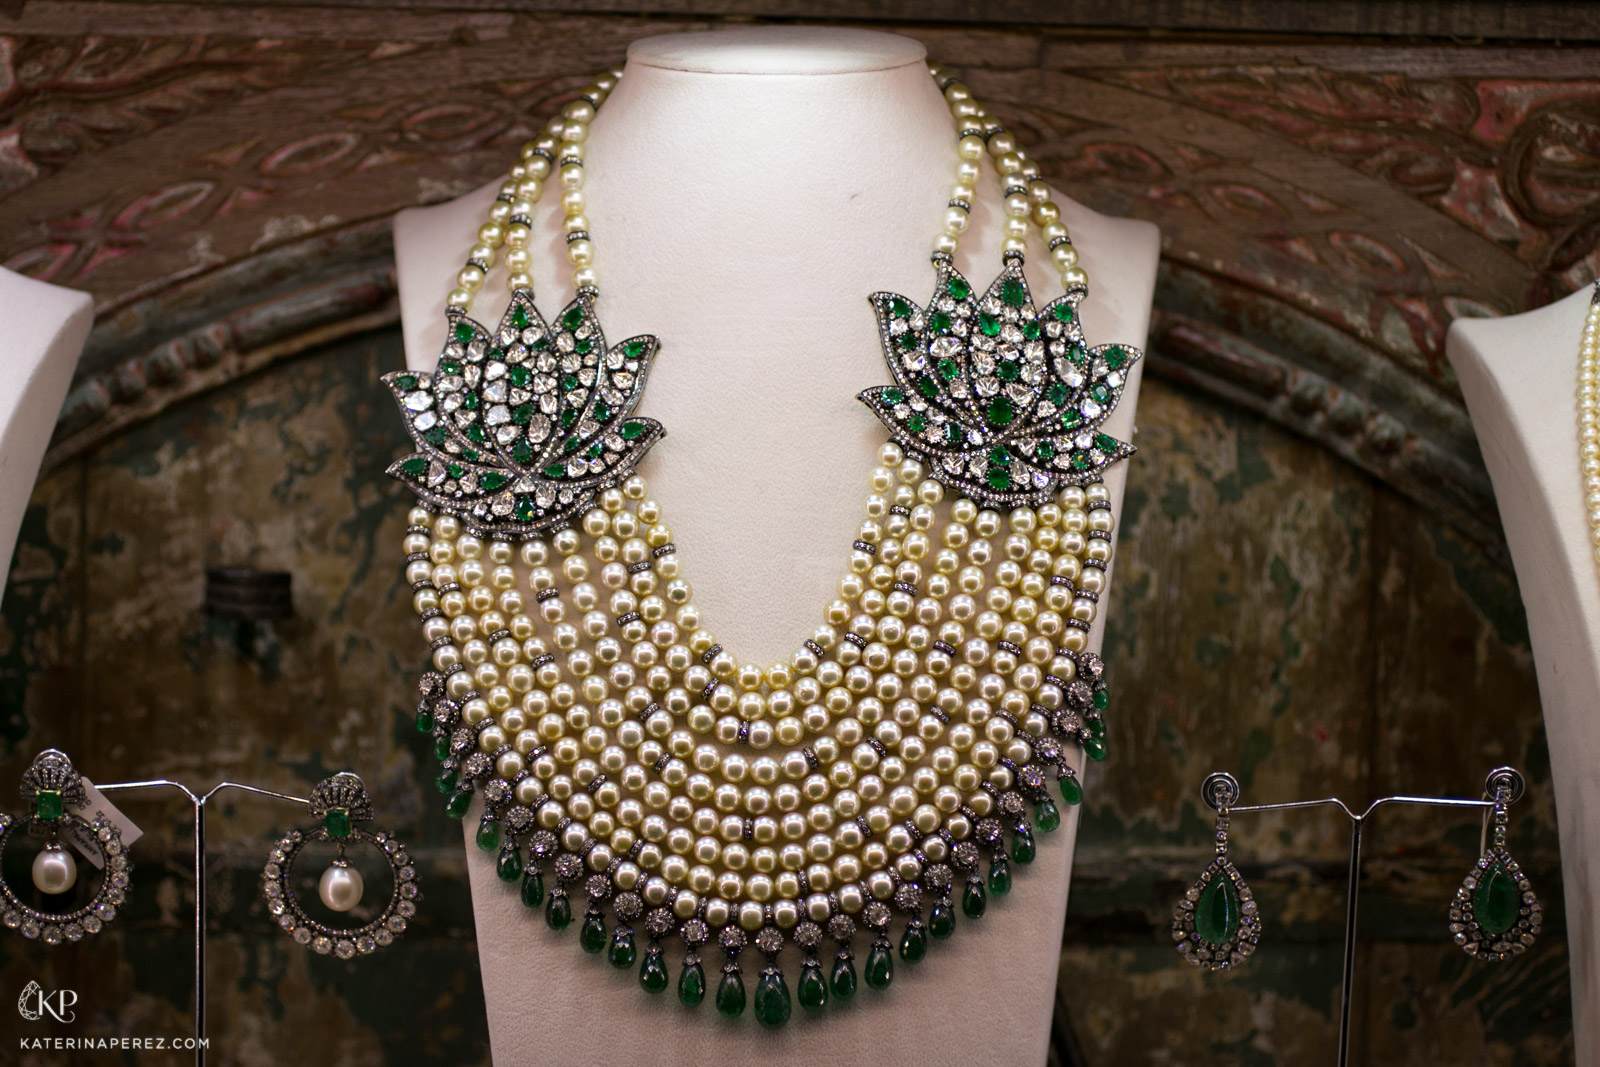 Amrapali pearl, emerald and diamond necklace